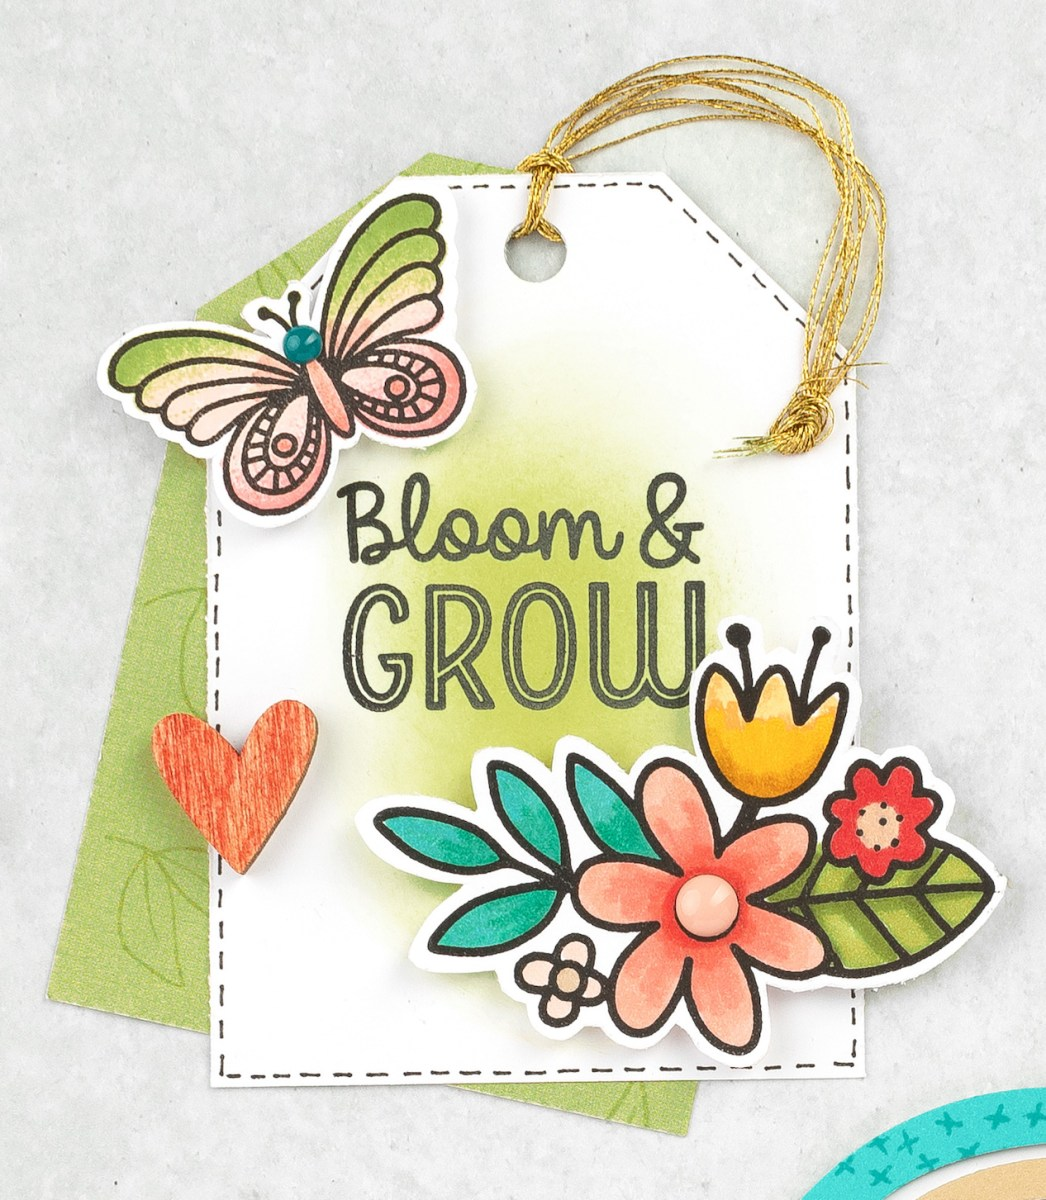 Embellishment Clusters #closetomyheart #ctmh #embellishmentclusters #paperaccents #cardmaking #scrapbooking #papercrafting #bloomandgrow #bloom&grow